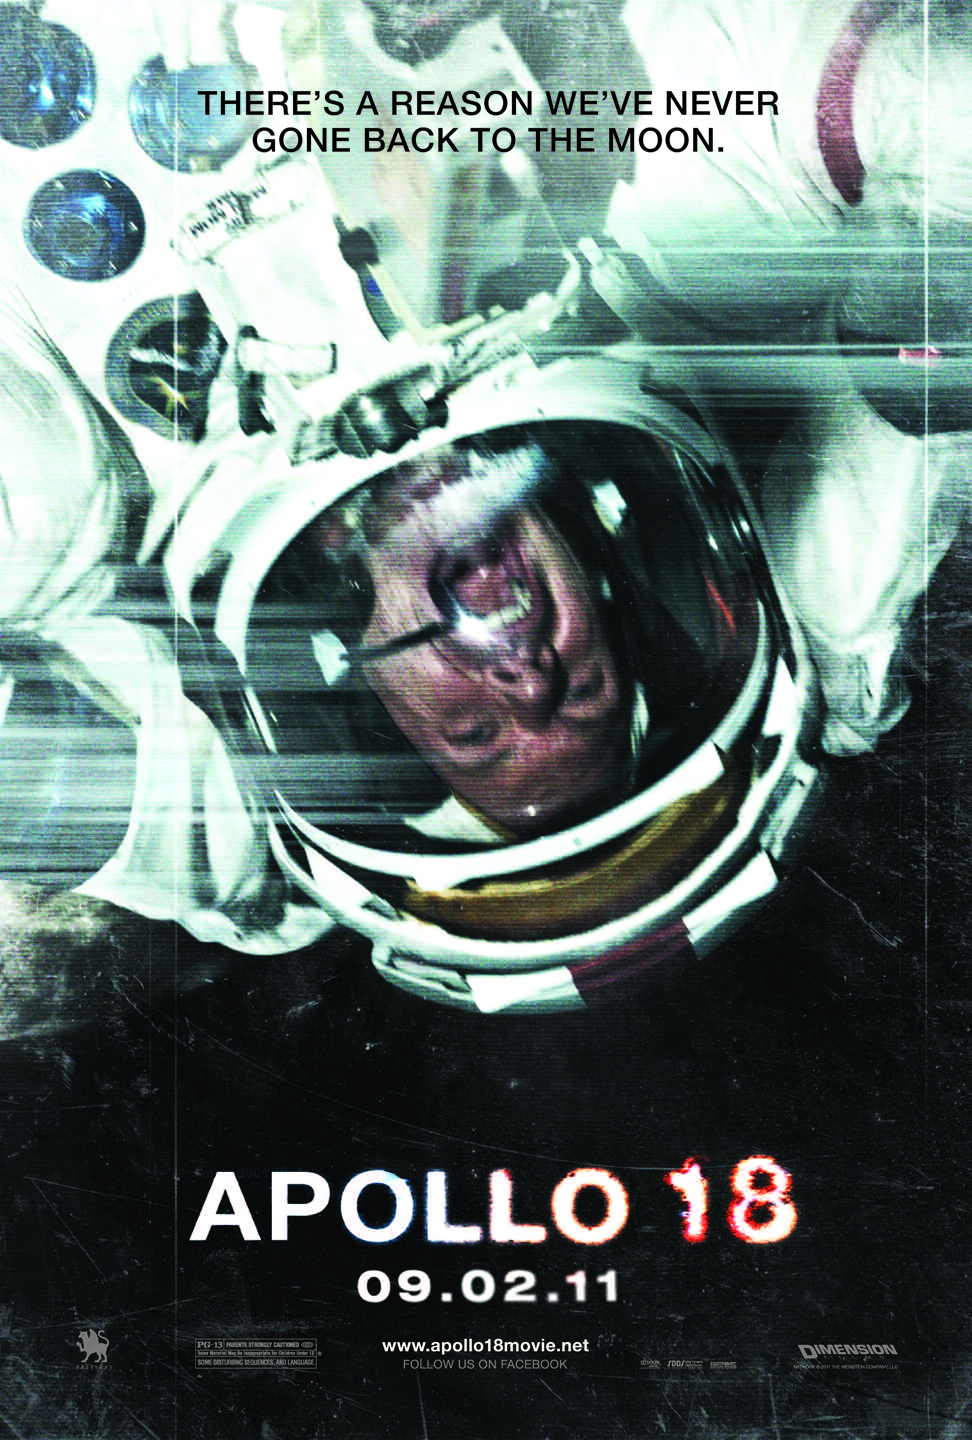 http://collider.com/wp-content/uploads/apollo-18-movie-poster-1.jpg